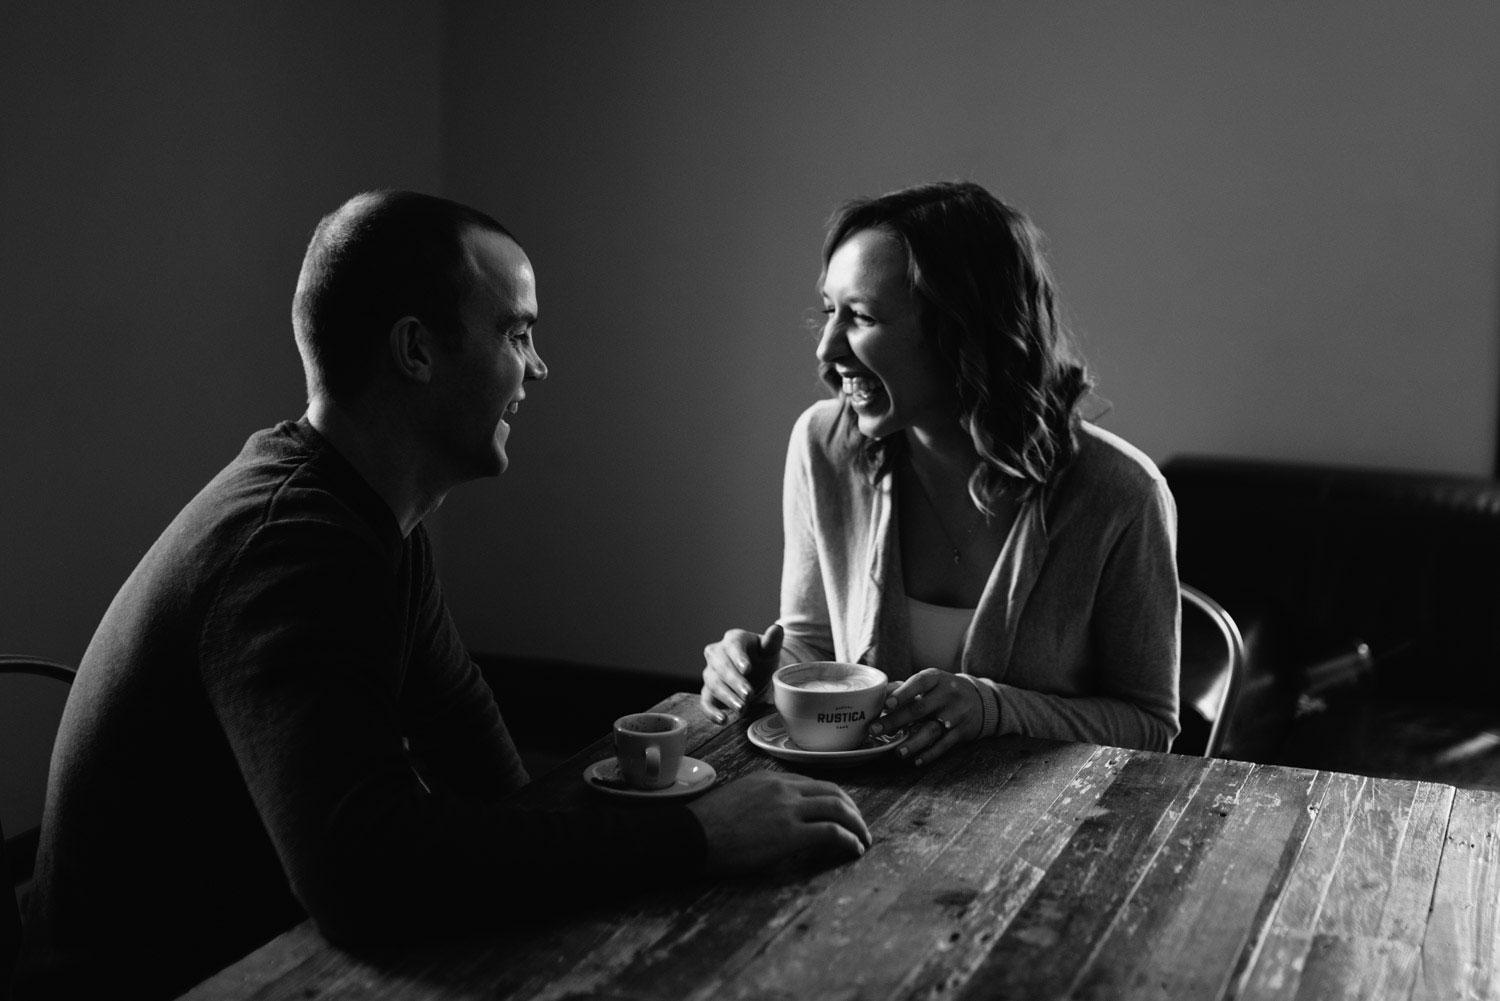 minneapolis-rustica-bakery-engagement-photographer-1-6.jpg